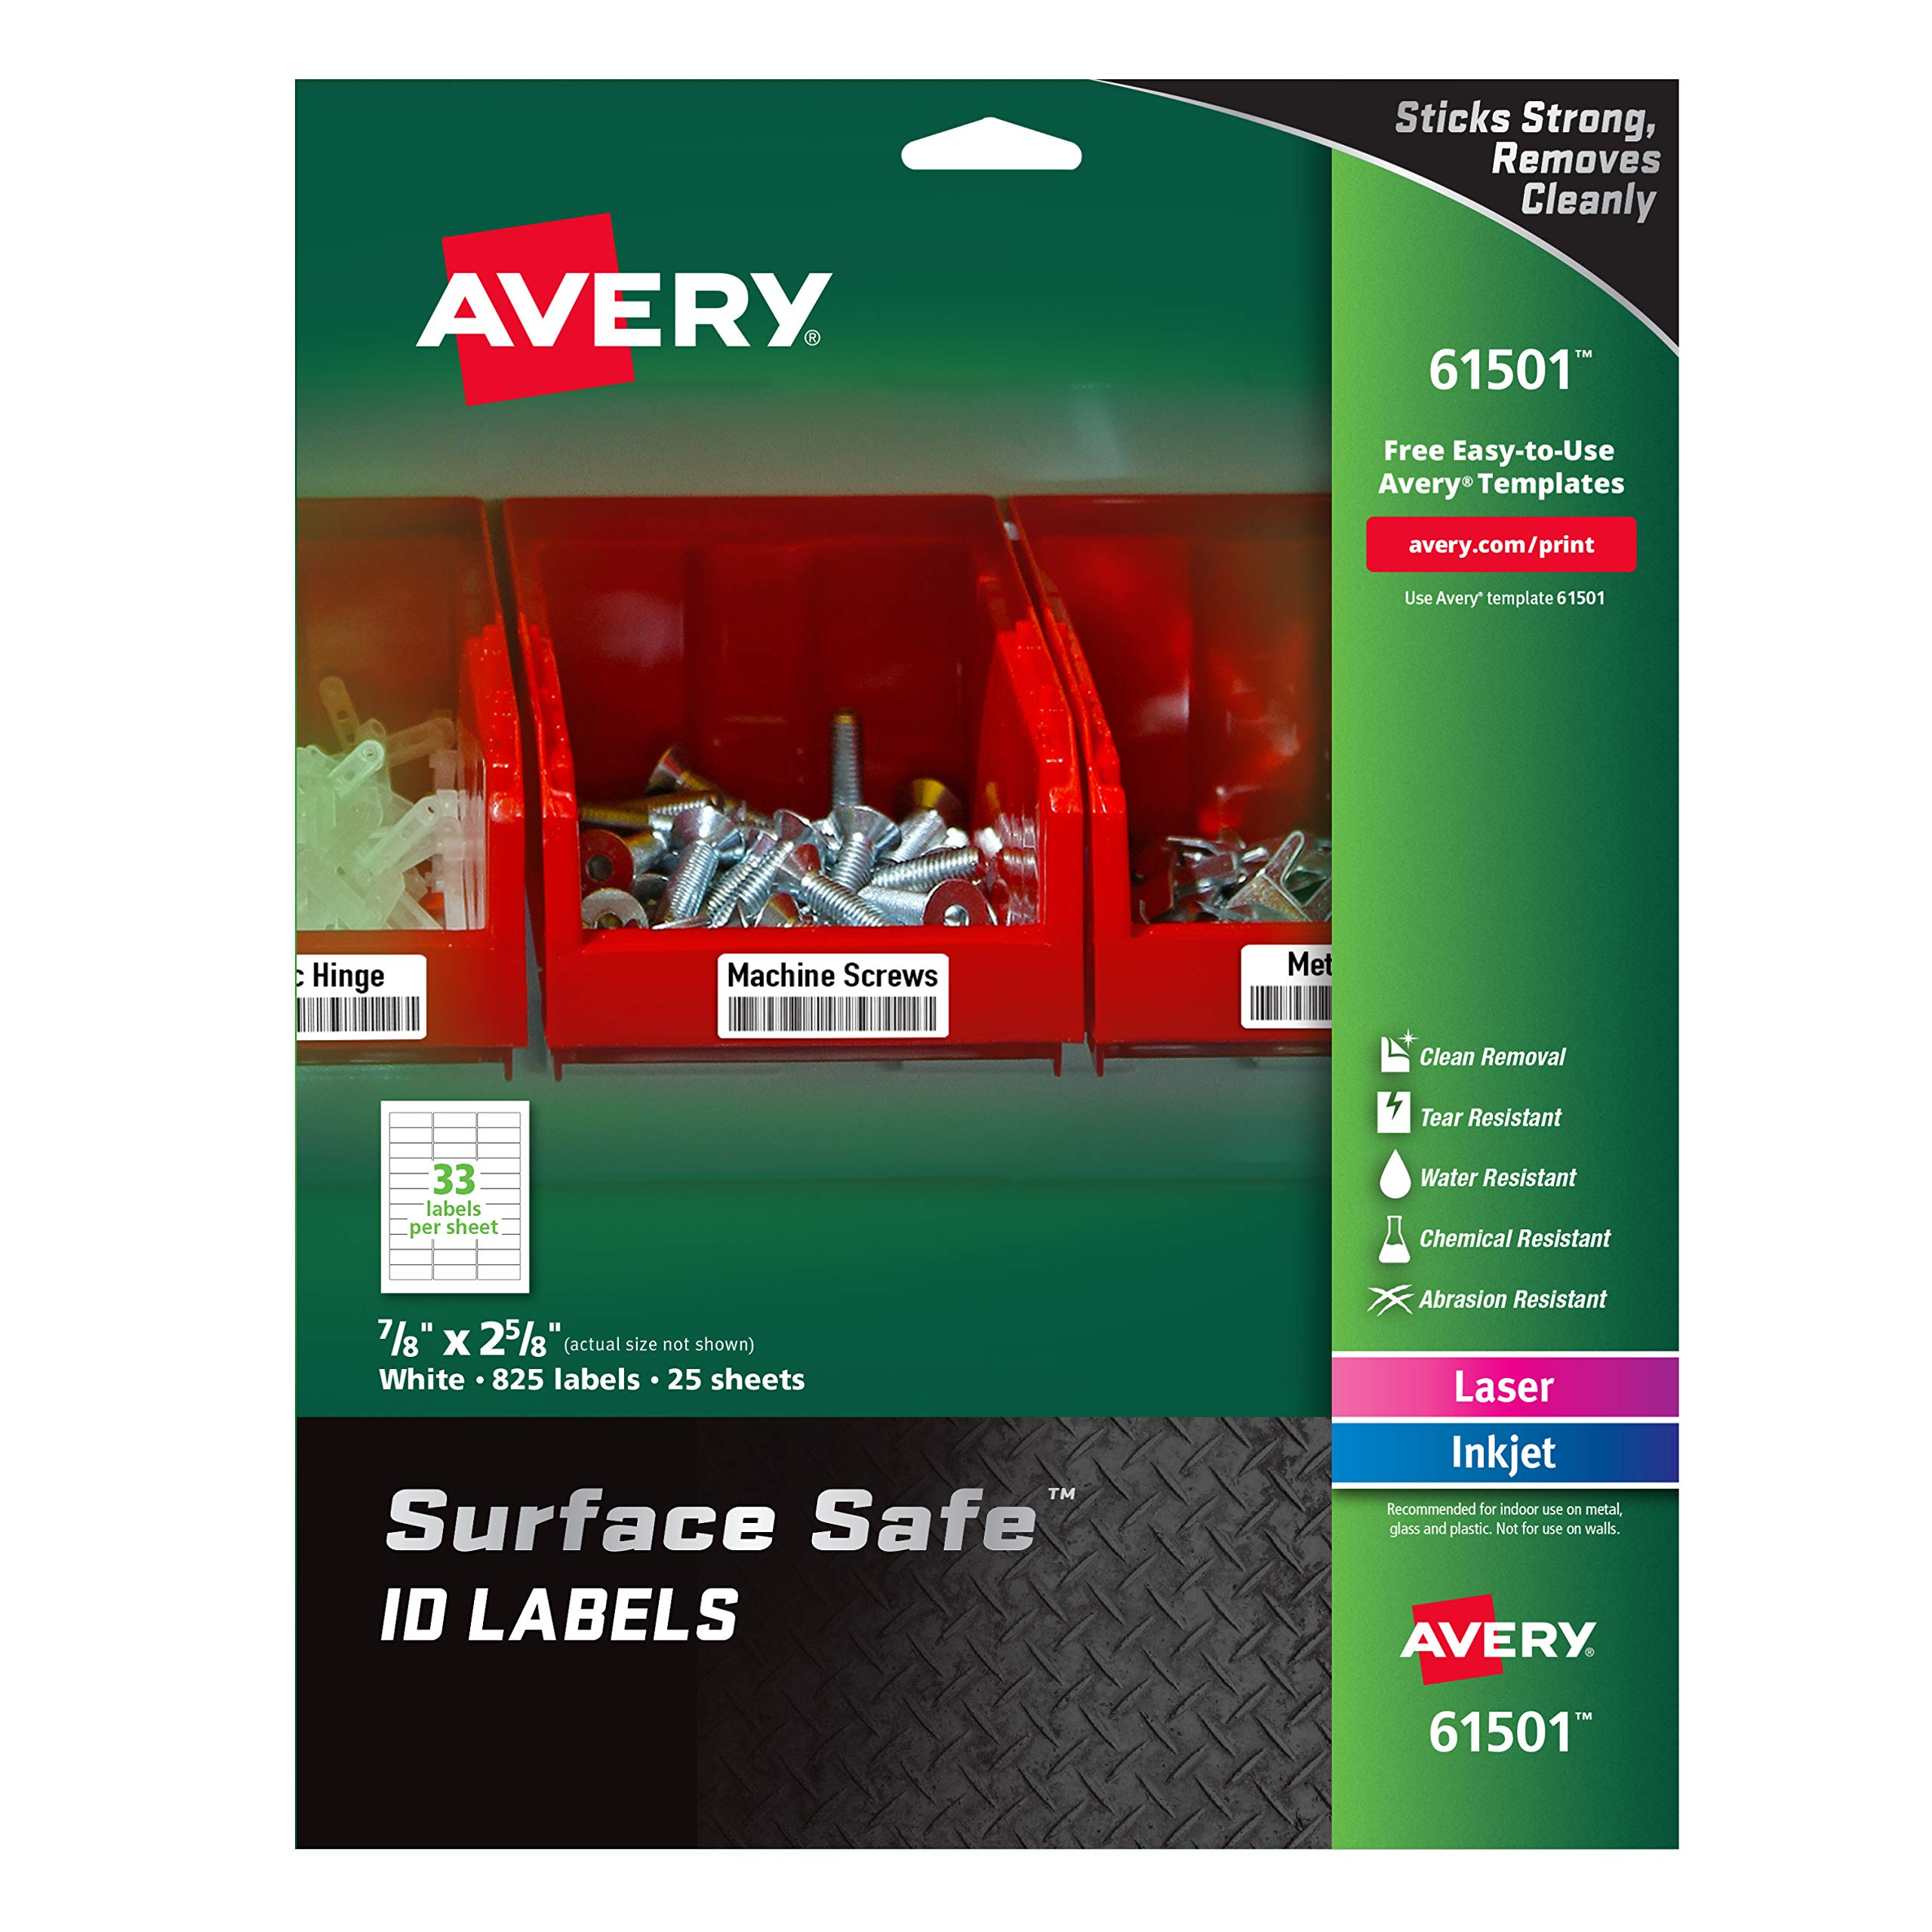 Avery Surface Safe Durable ID Labels, Removable Adhesive, Water Resistant, 7/8'' x 2-5/8'', 825 Labels (61501) by AVERY